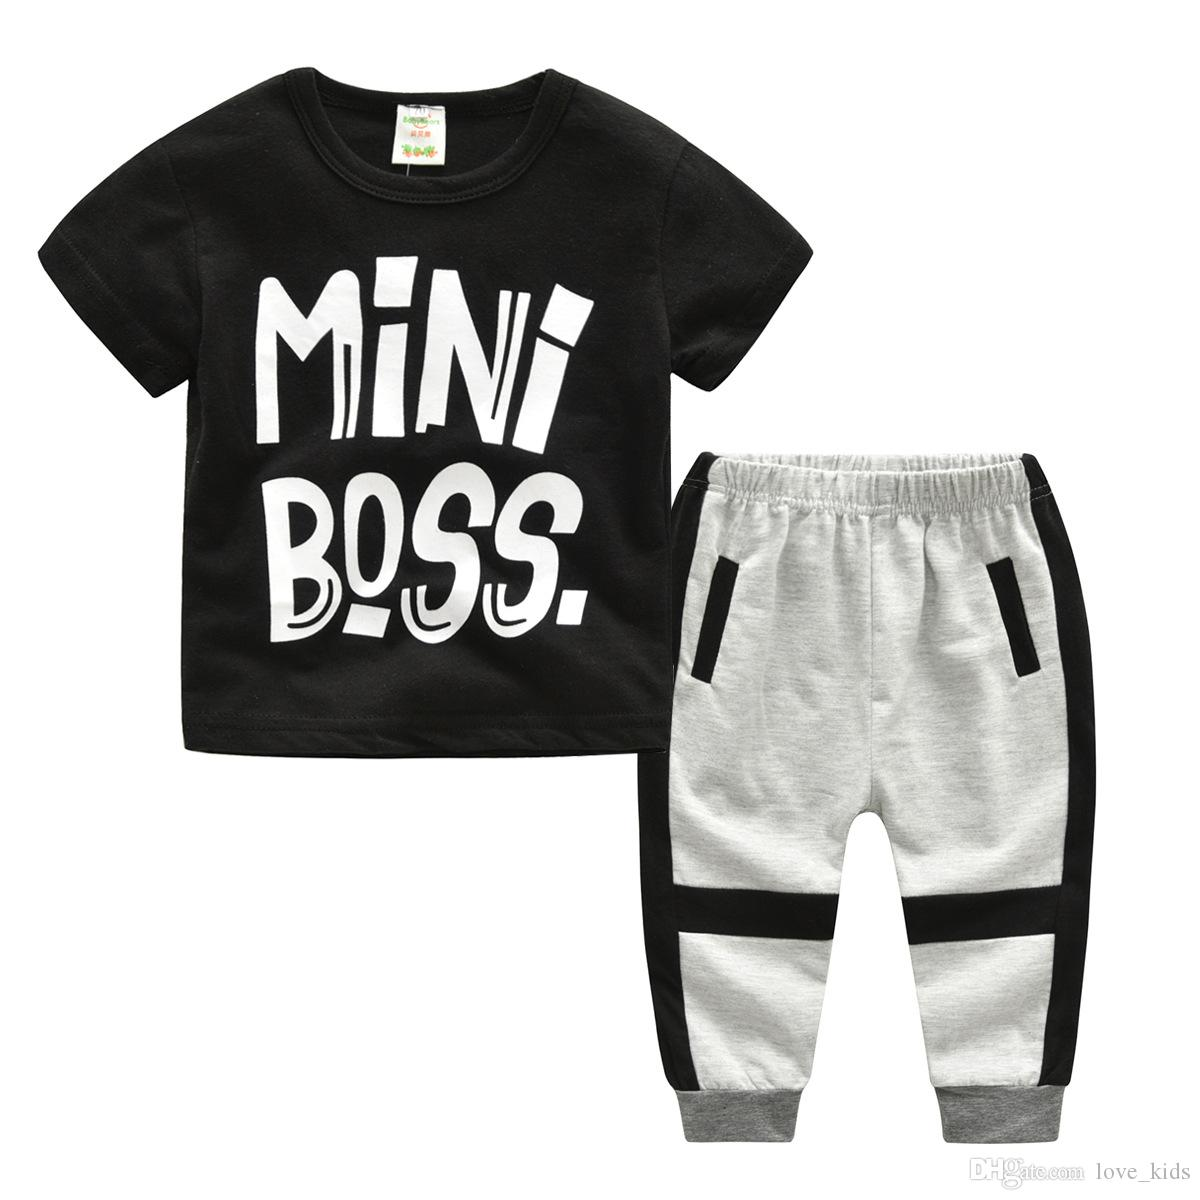 2018 New Style mini boss letters Children's Clothing For Boys And Girls Sports Suit Baby Infant Short Sleeve Clothes Kids Set